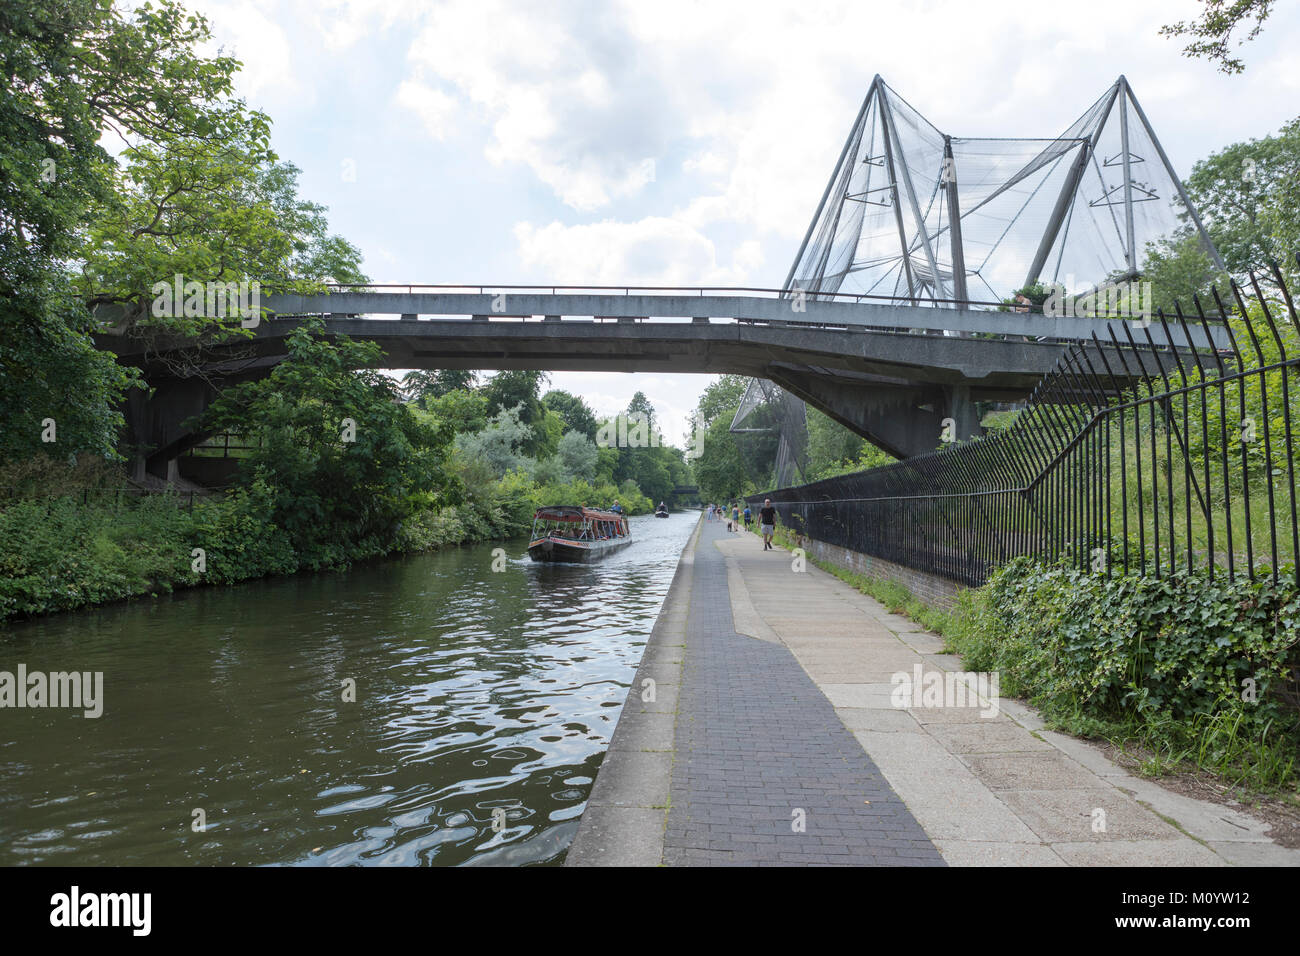 Regents canal and towpath and London Zoo. Stock Photo